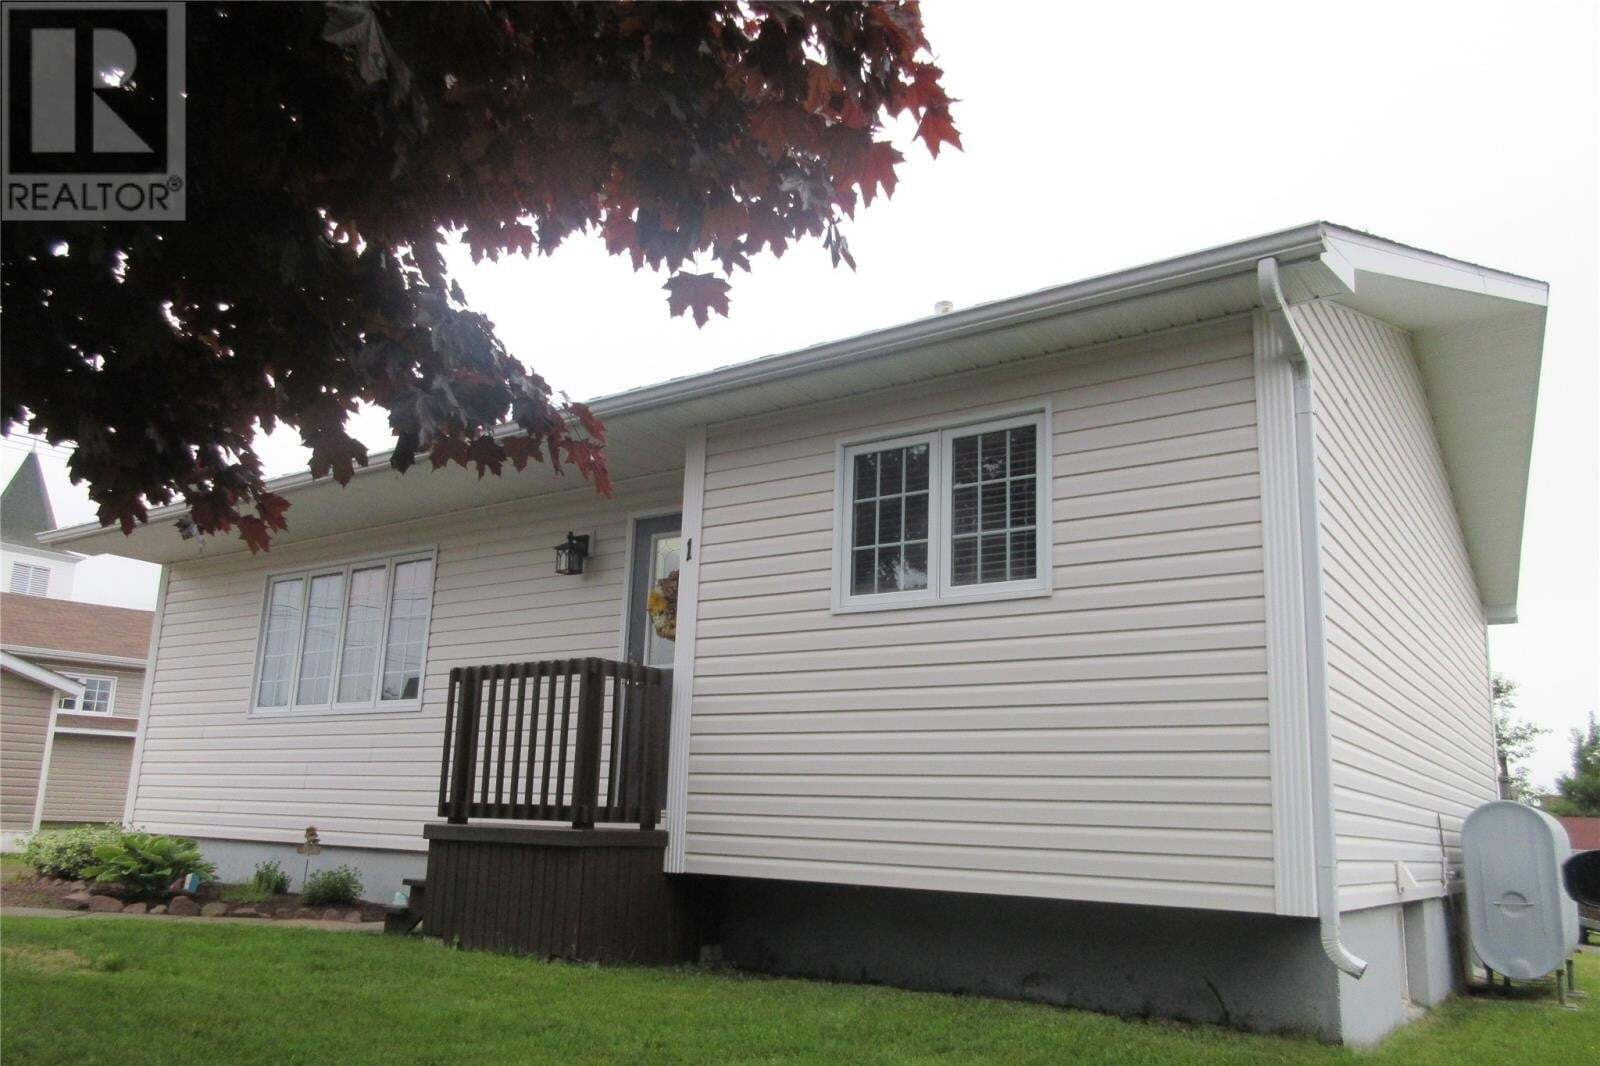 House for sale at 1 Churchill Rd Botwood Newfoundland - MLS: 1199186